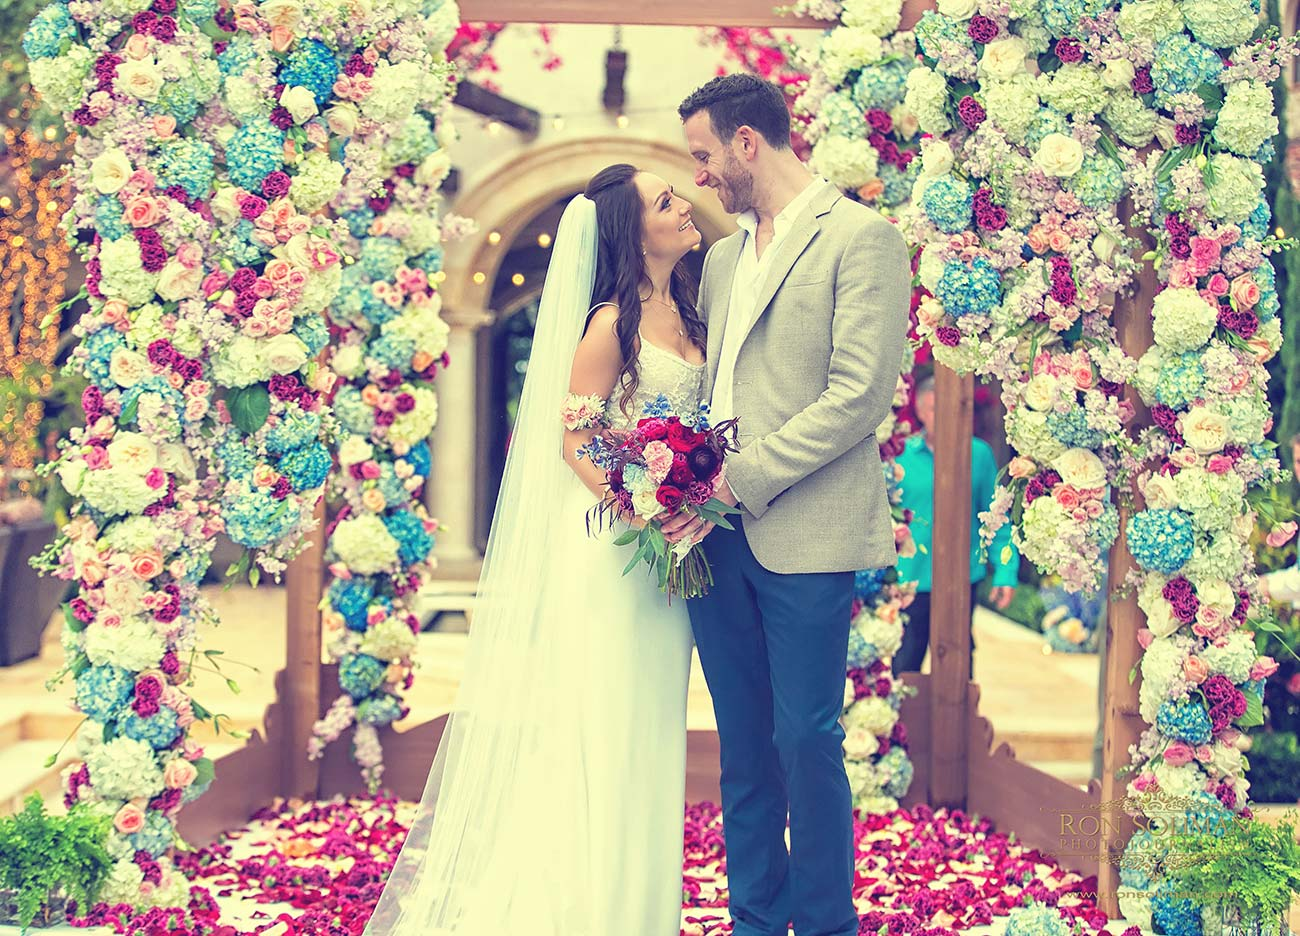 Bride and groom portrait in front of their floral wedding day arbor